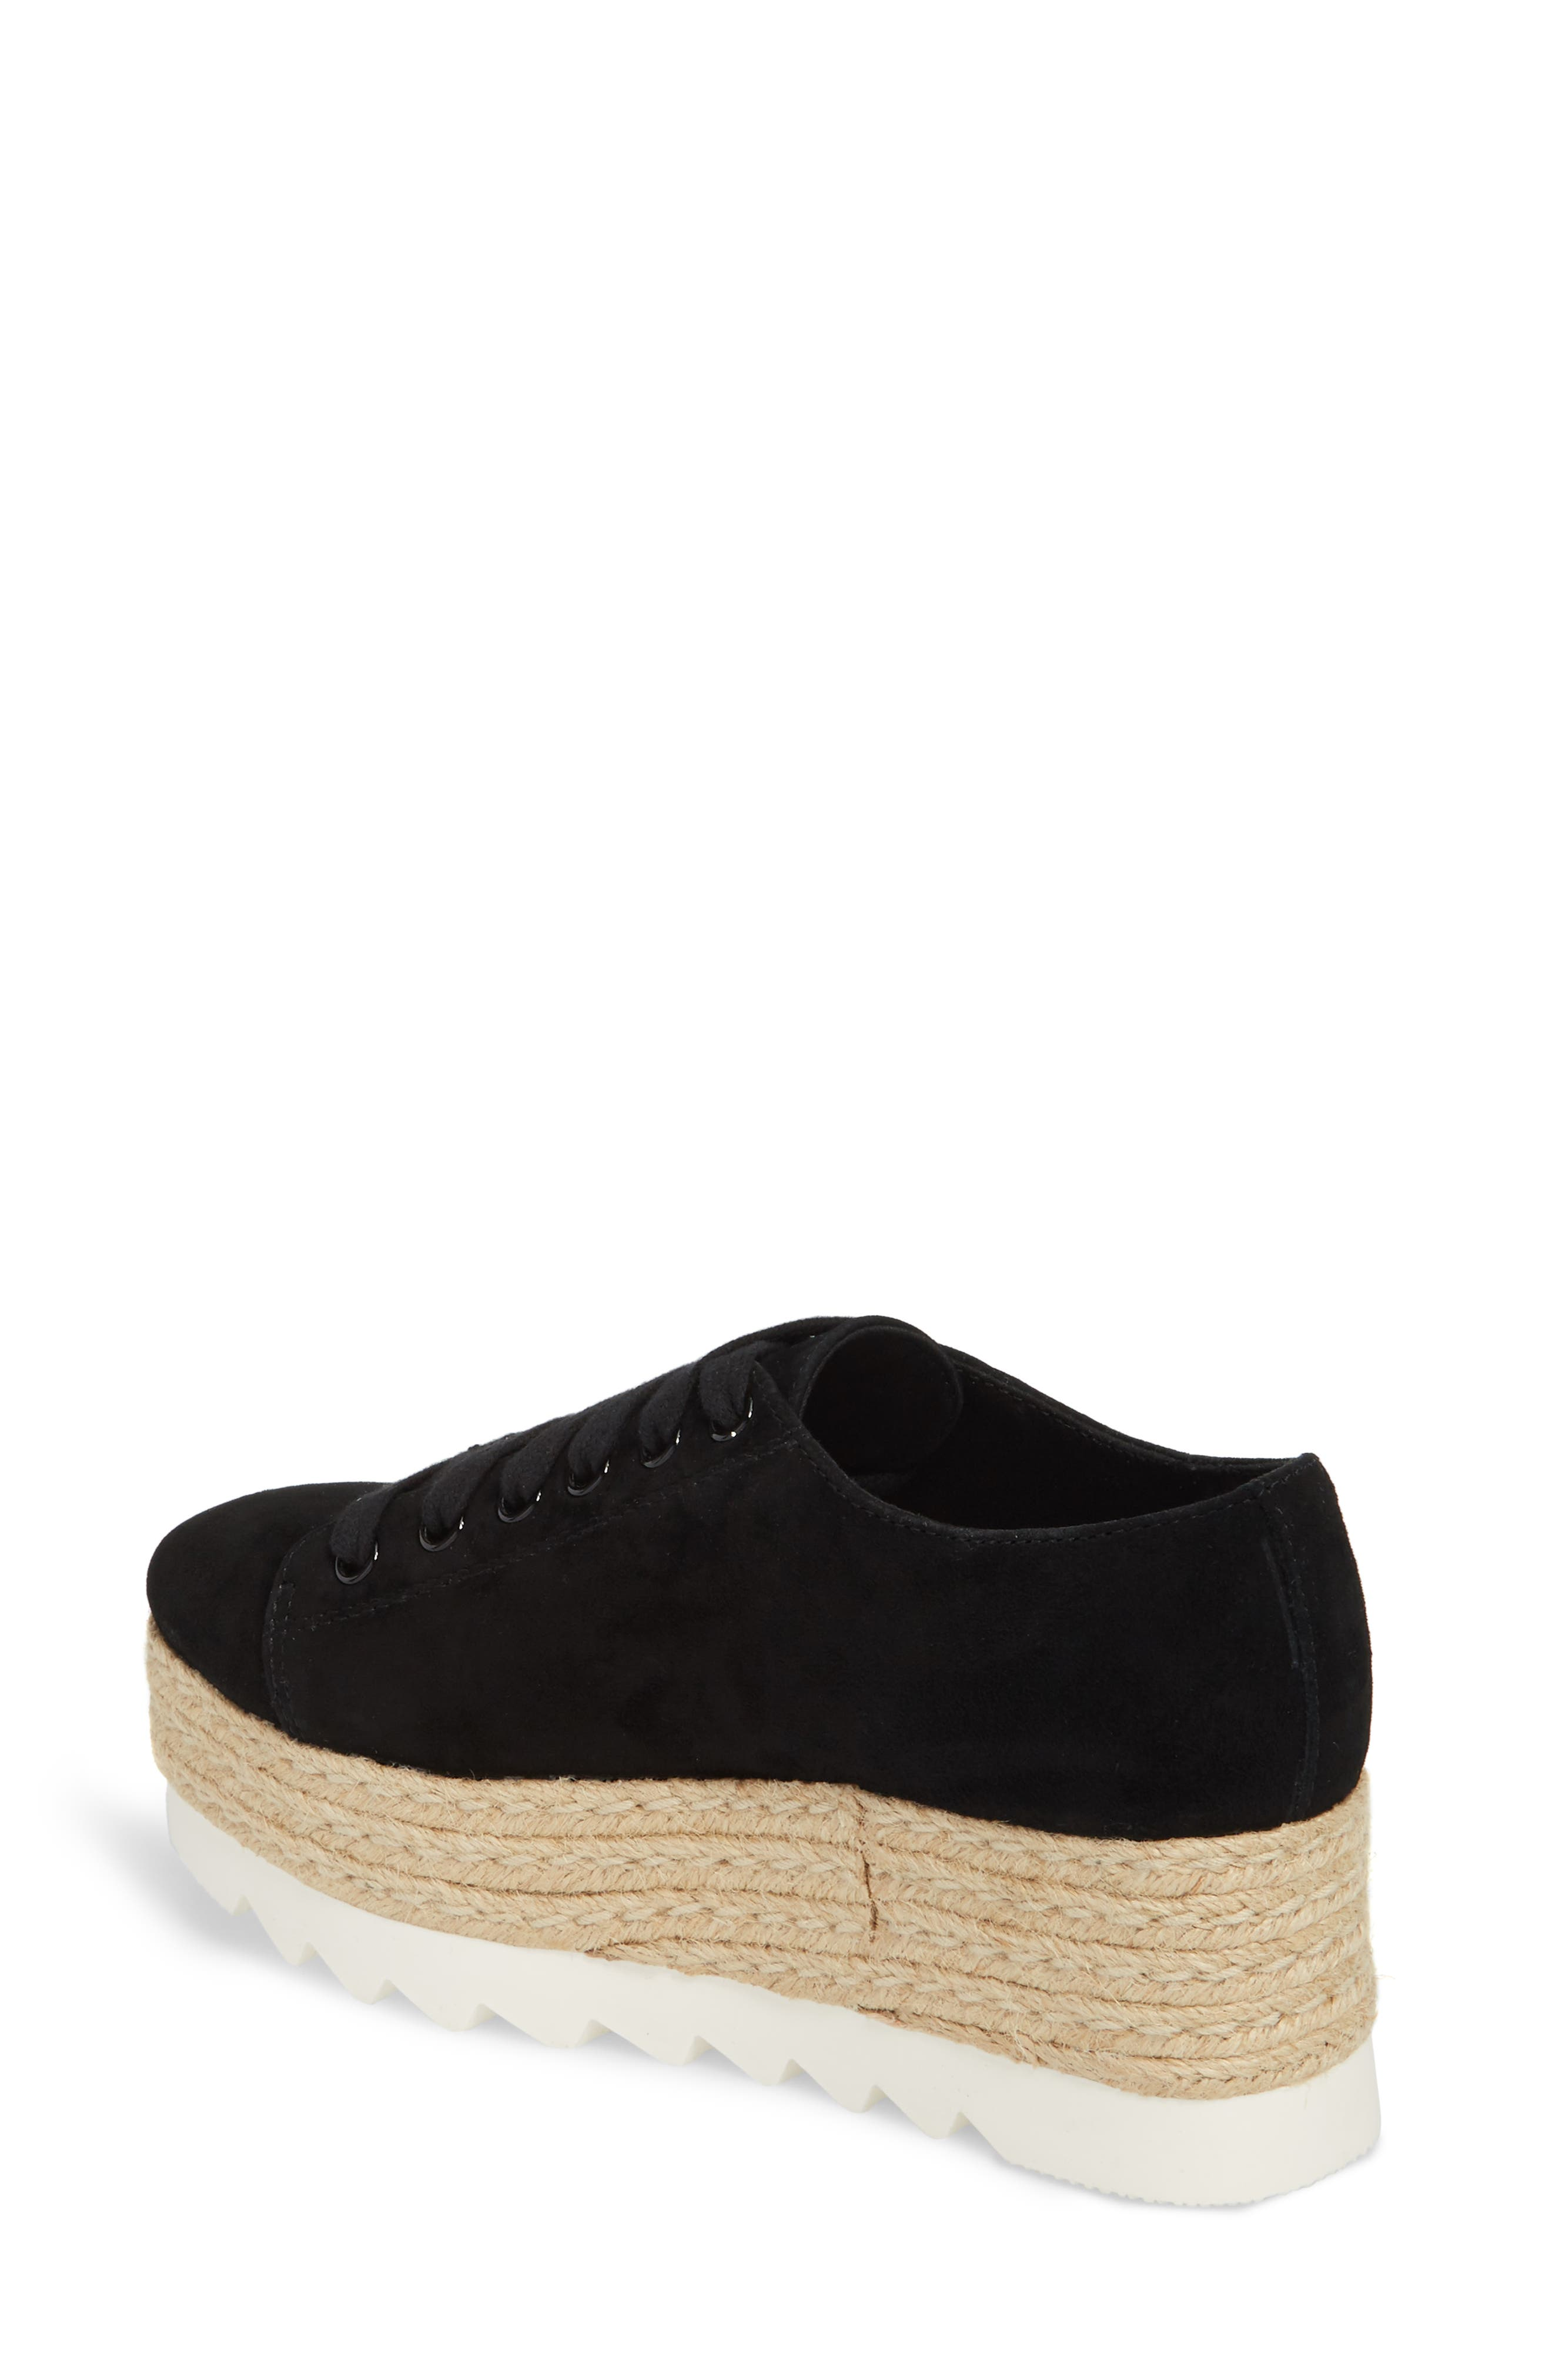 Karma Espadrille Platform Sneaker,                             Alternate thumbnail 2, color,                             Black Sued